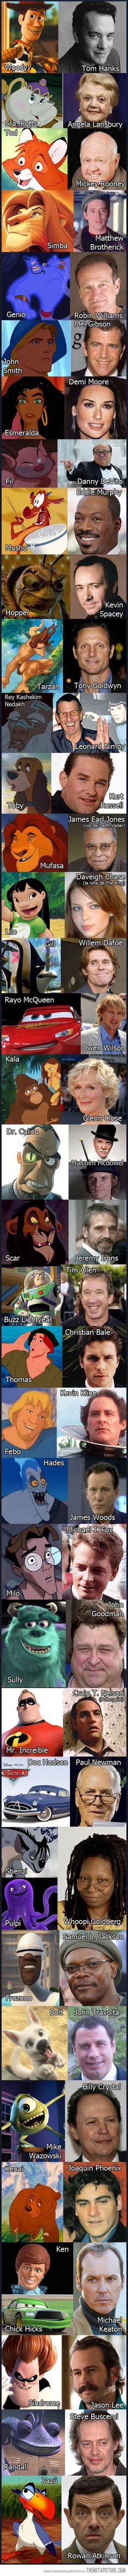 I like this - Disney characters and their actors